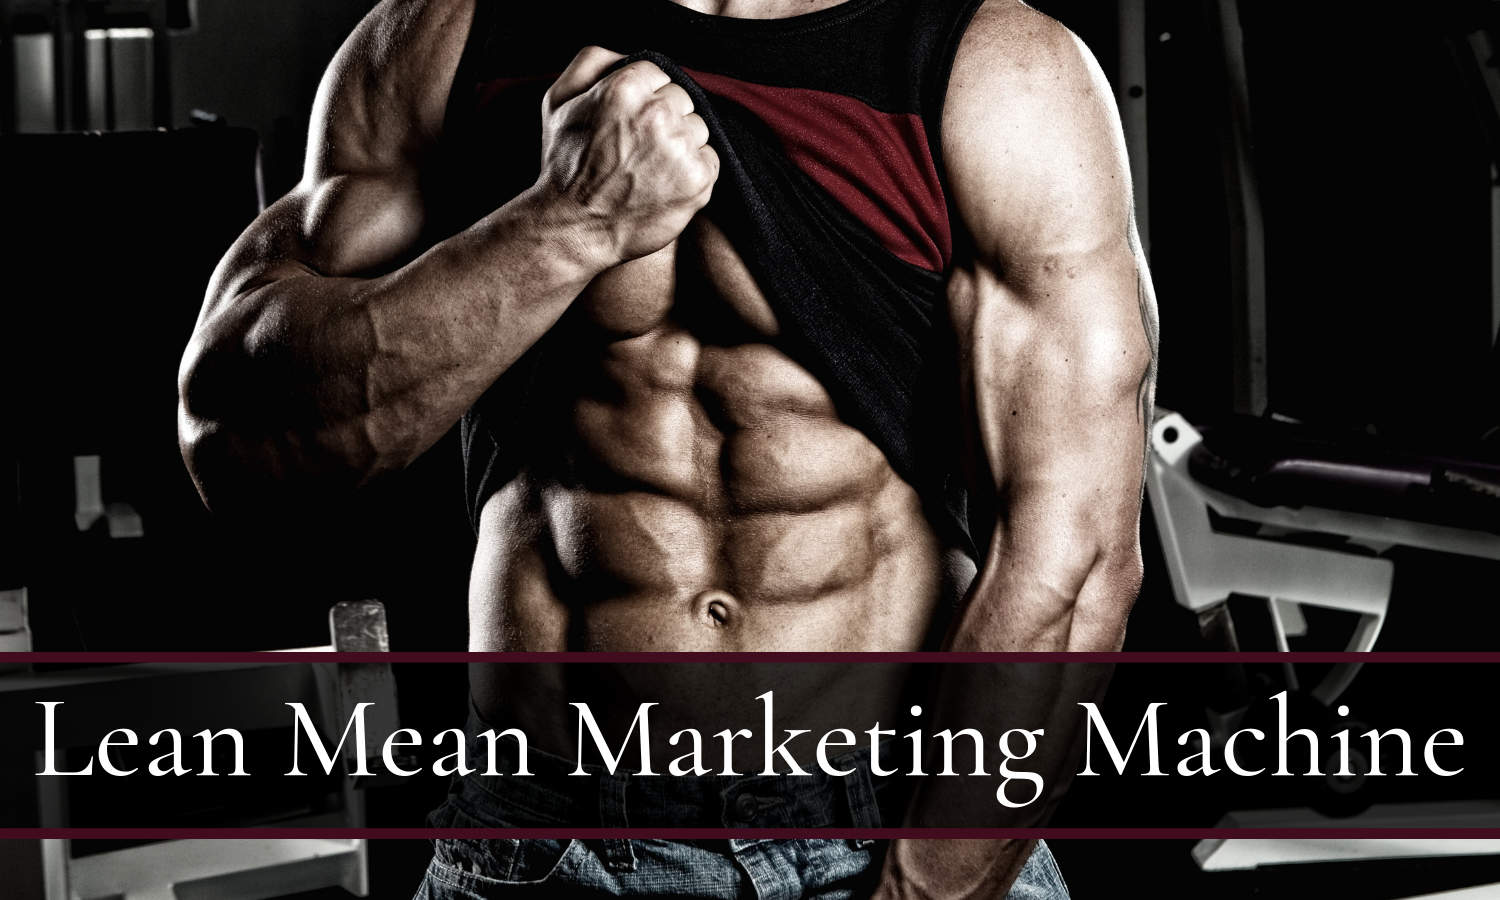 Running a Lean Mean Marketing Machine